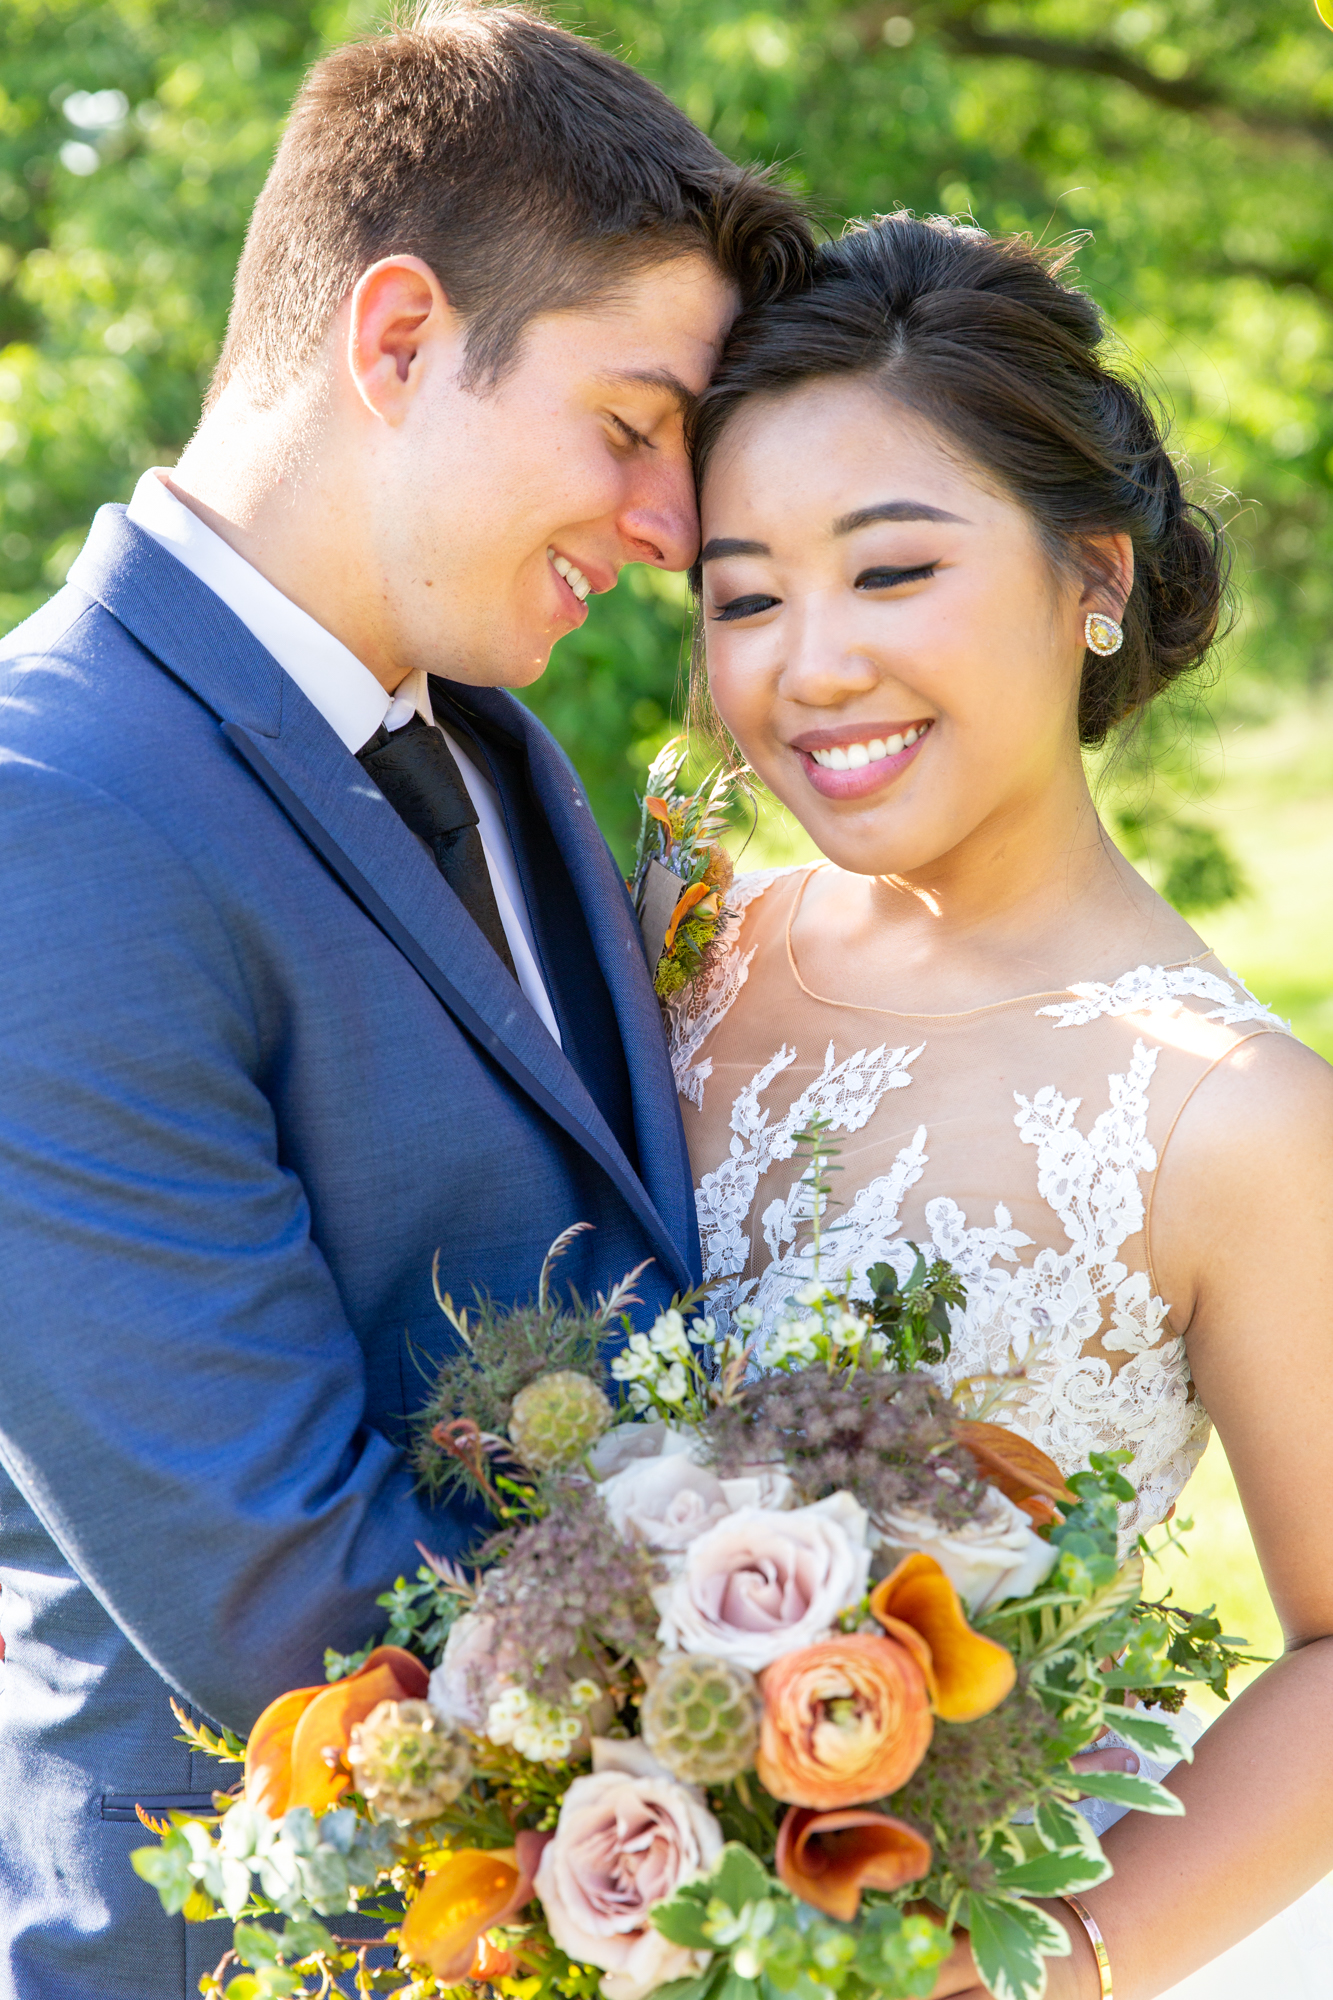 Understand the importance of investing Bailey Pianalto Photography's professional wedding and portrait photography services to capture your once-in-a-lifetime moments.